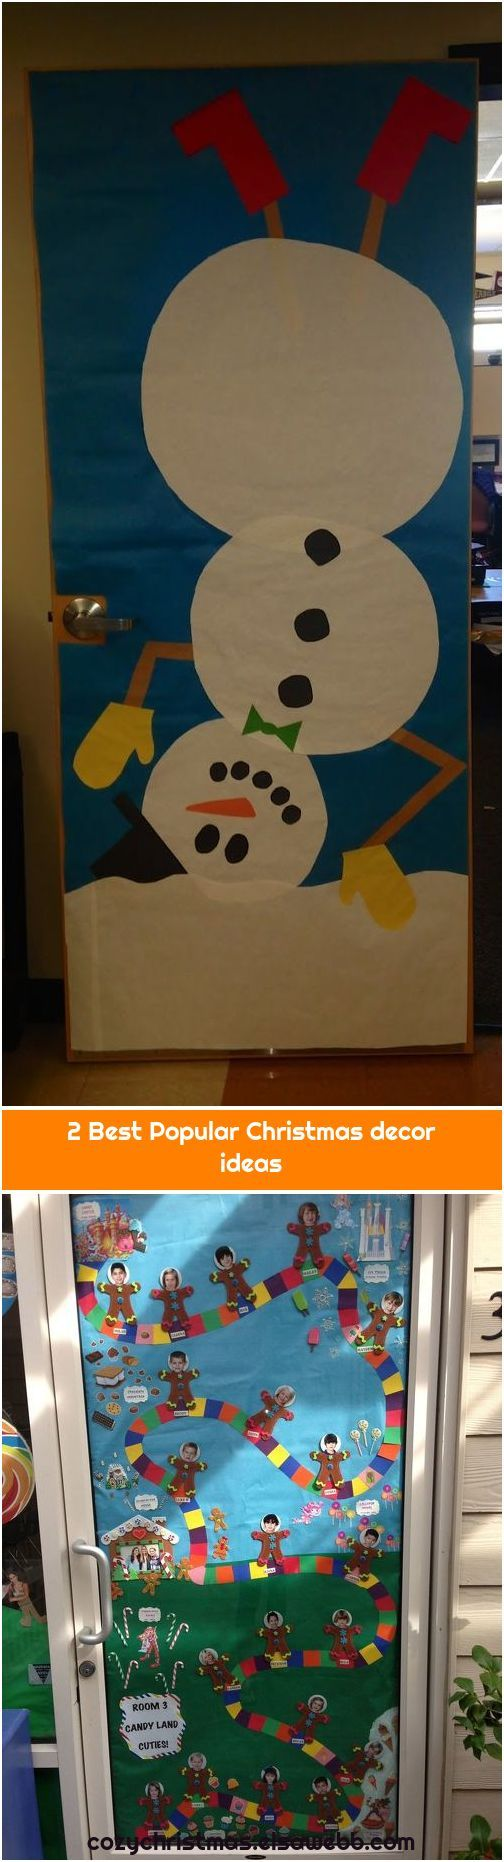 2 Best Popular Christmas decor ideas 1. Candy Land Door Room 3 Classroom Ideas Christmas Candy Land